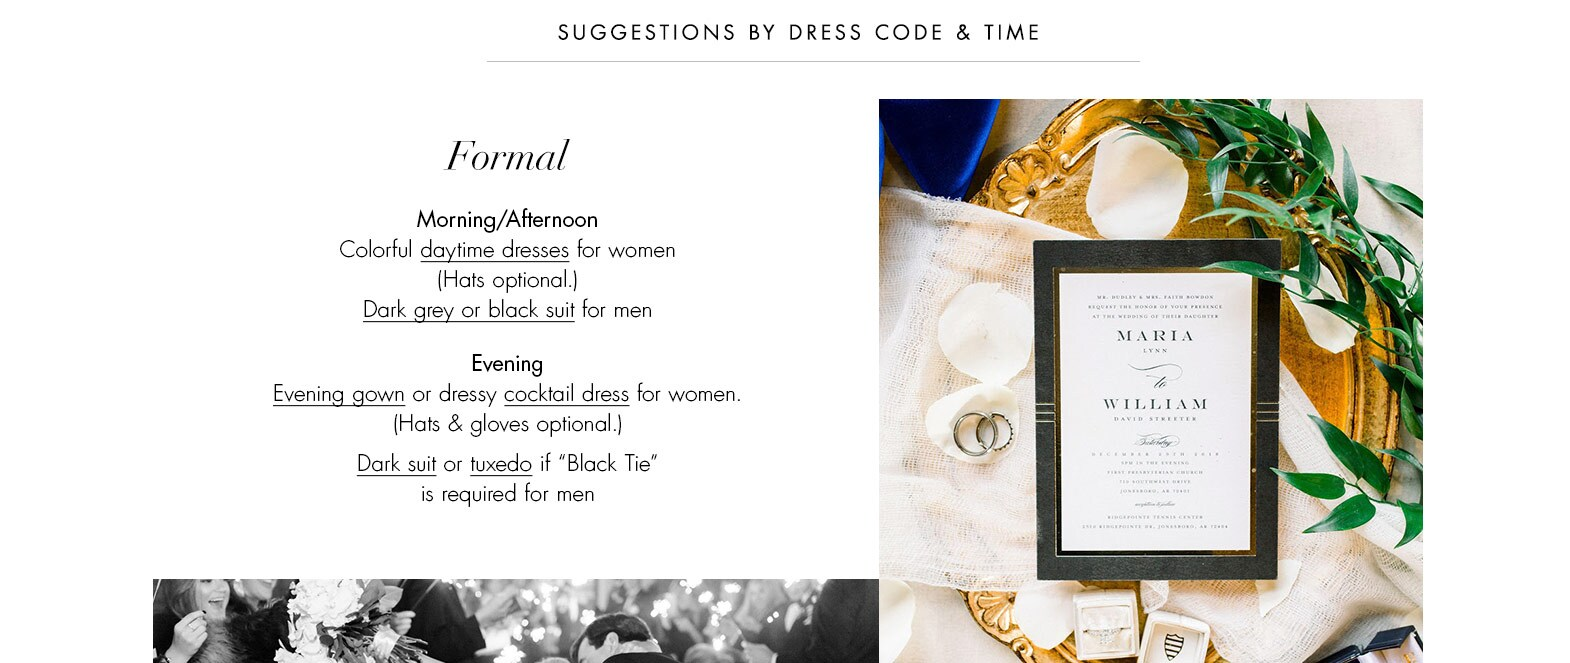 Formal - wedding attire guide